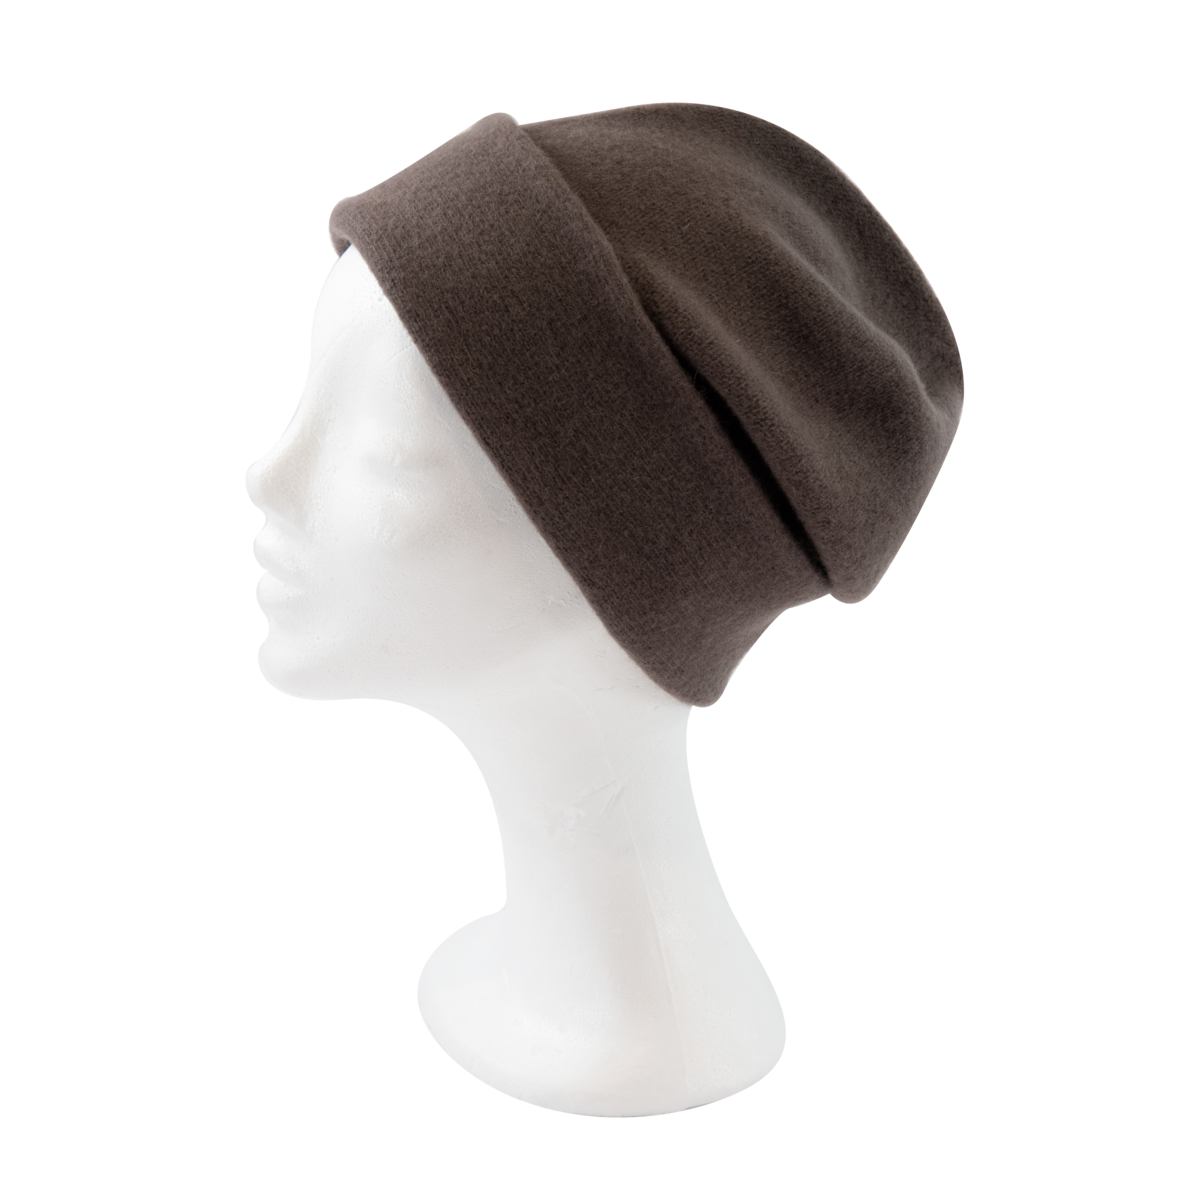 Kopka NeRo Beanie - Mud - product images  of